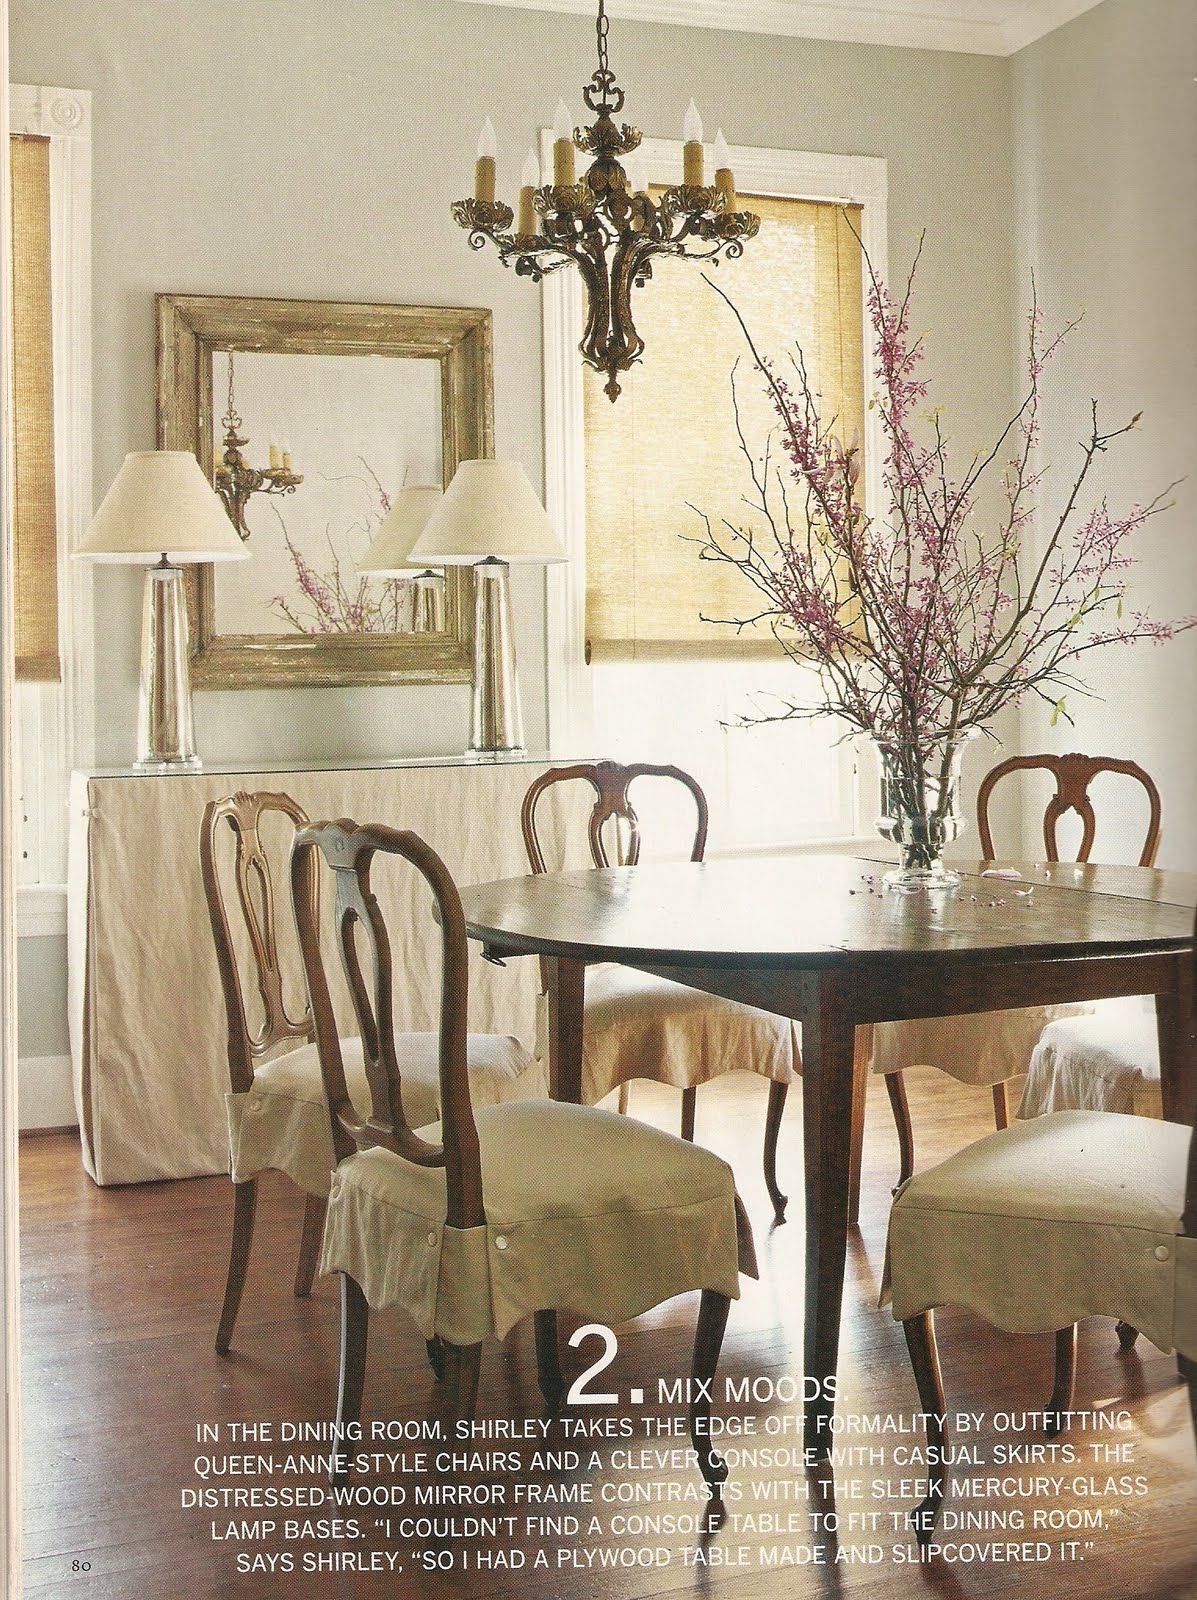 Country Home Feature 2 Mix Moods Take The Edge Off The Formality By Adding The Slip Covers On The Seats Console Dining Room Chair Slipcovers Slipcovers For Chairs Dining